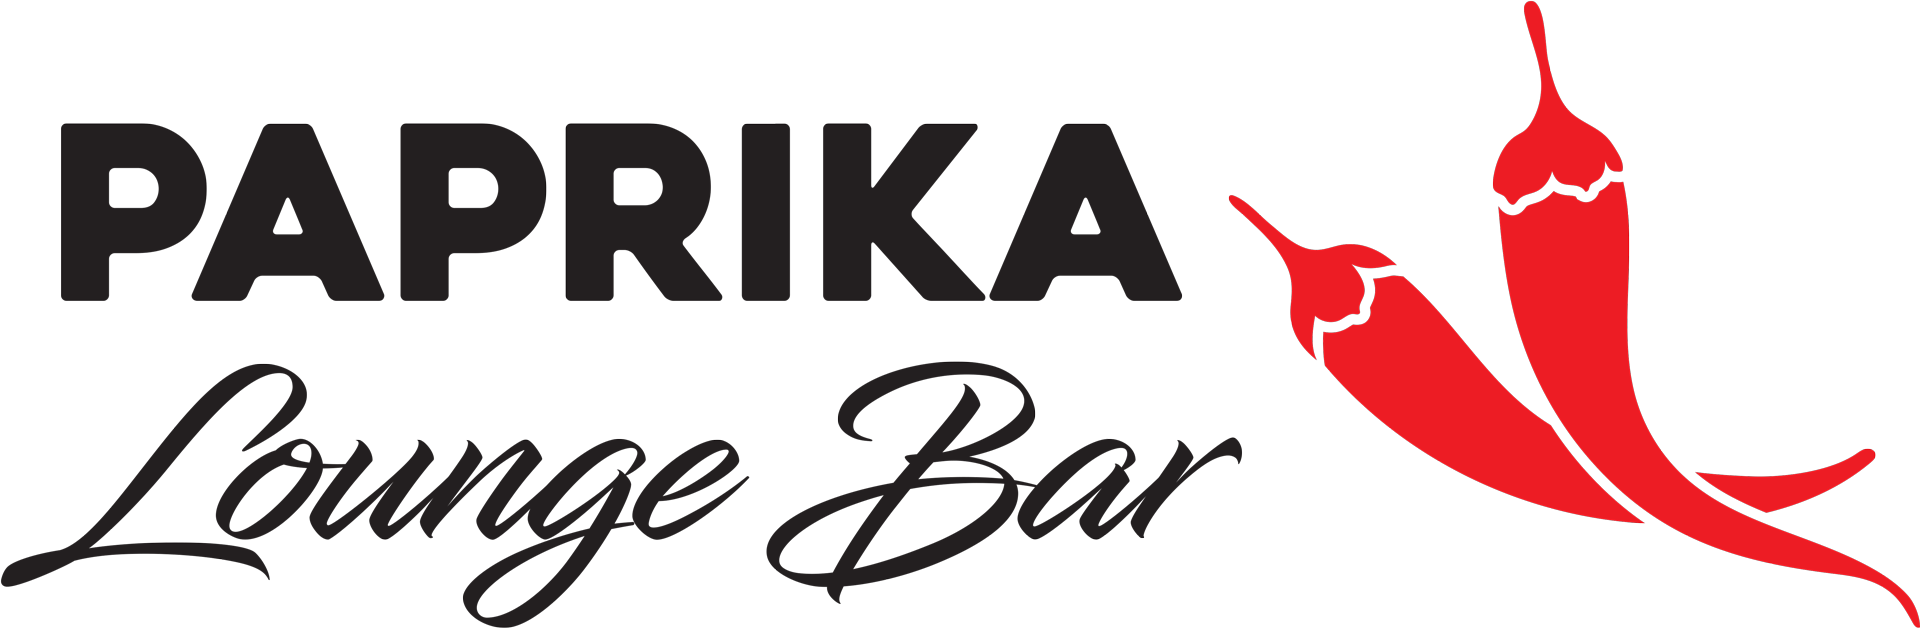 Paprika Lounge Bar